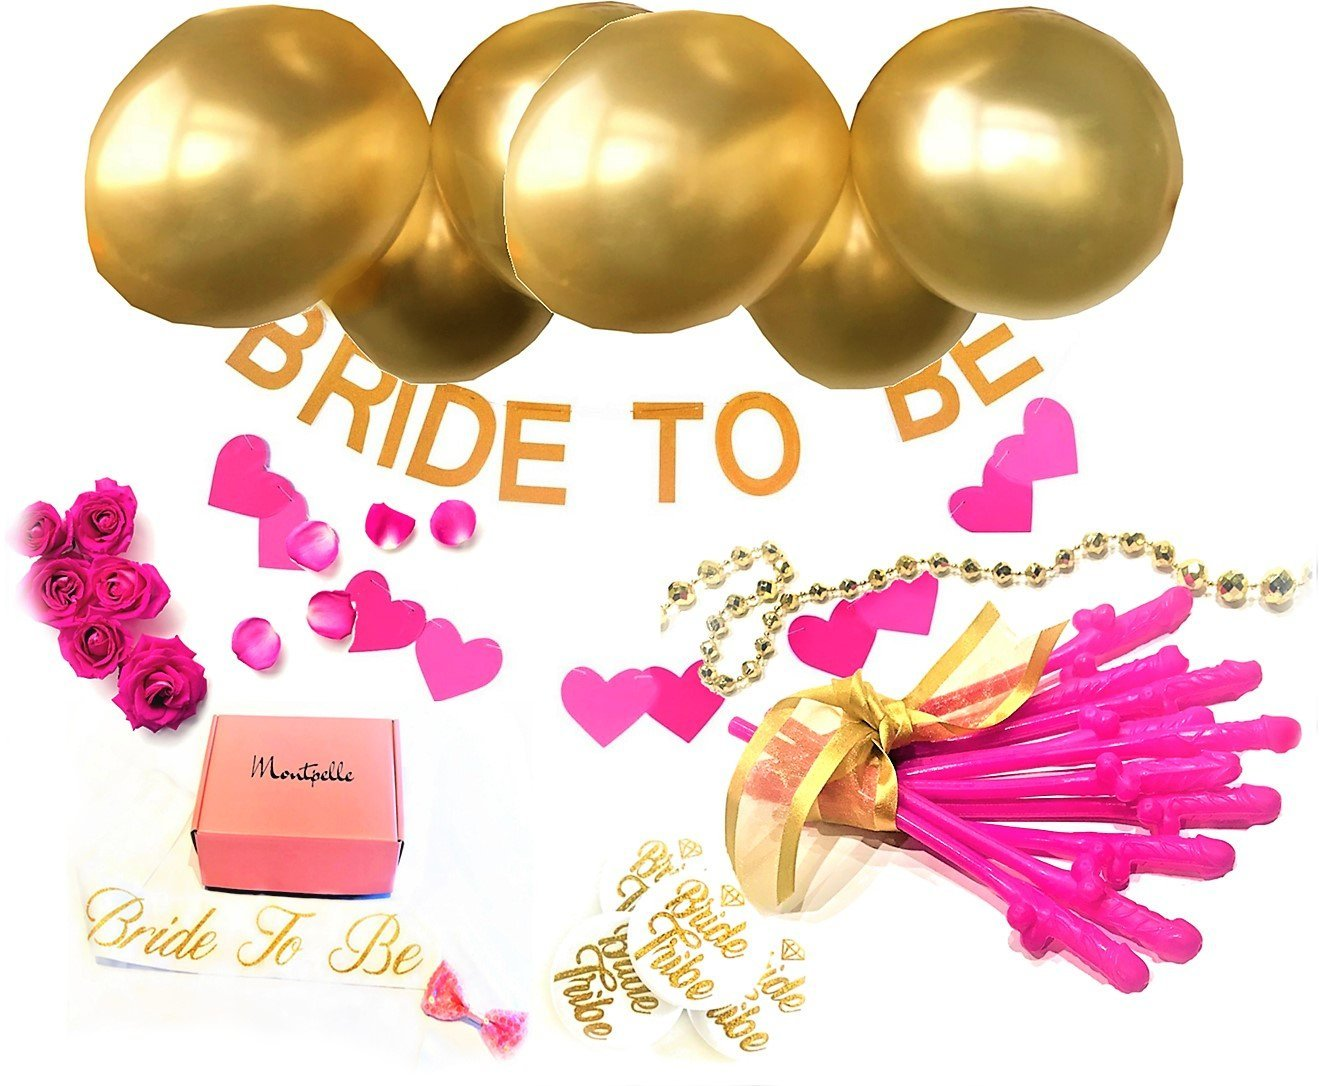 Bachelorette Party Decorations Kit Gold - Pink Heart Banner, Bridal Shower Sash, Bride to Be Banner, Bachelorette Party Straws, Bride Tribe Pins, Gold Balloons